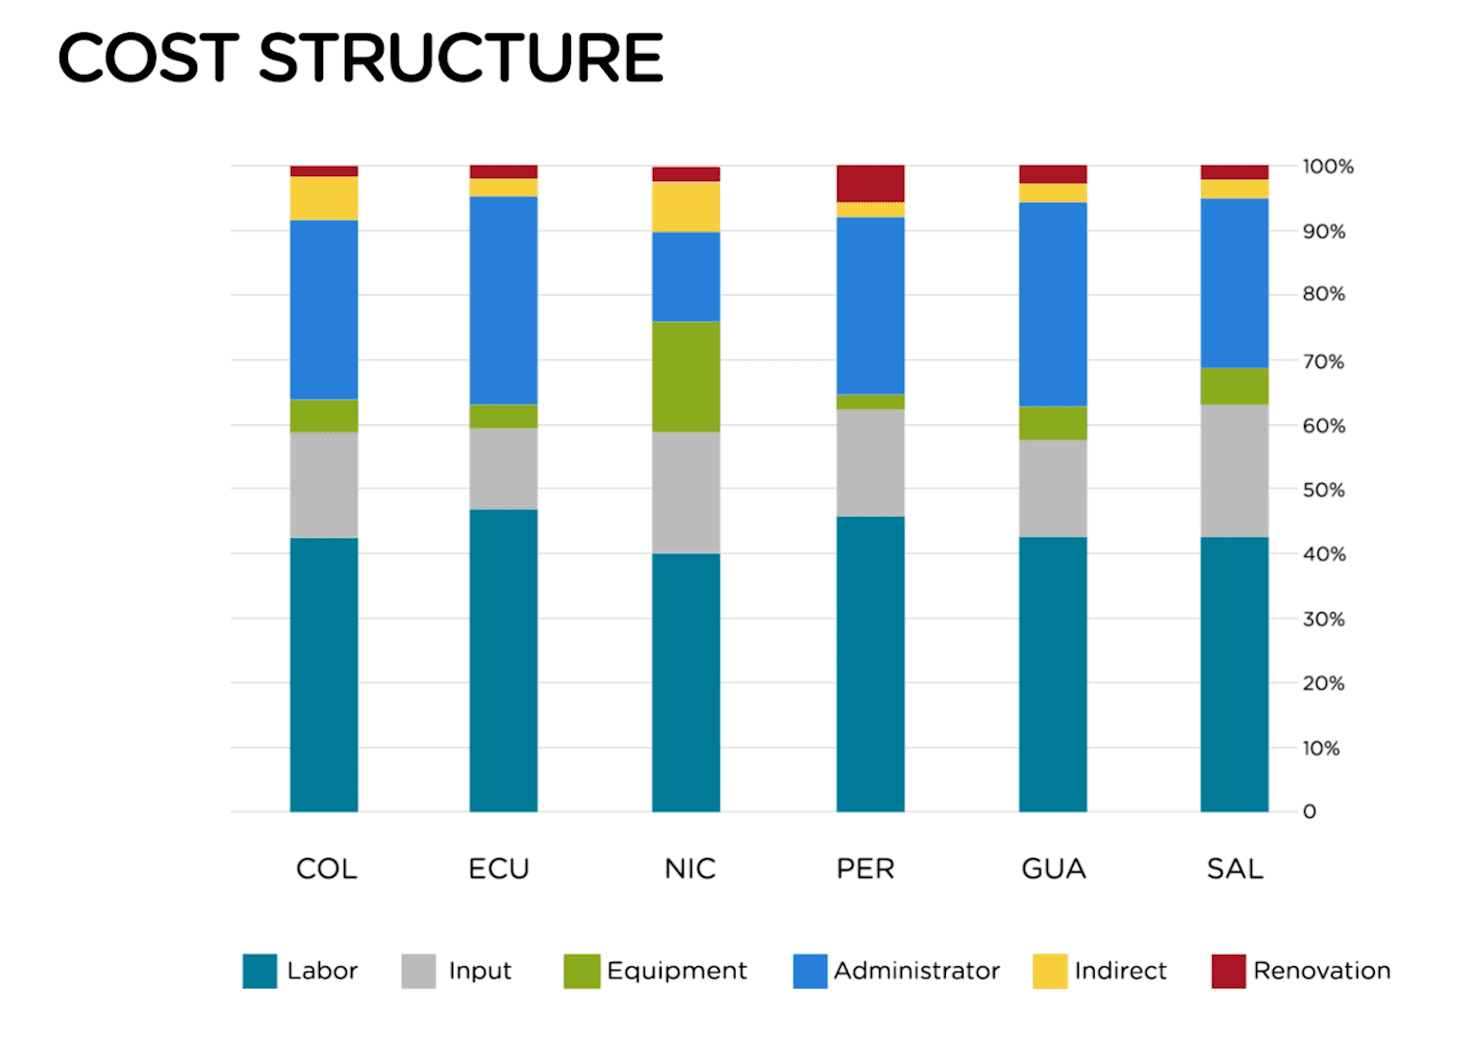 Breakdown of cost structure